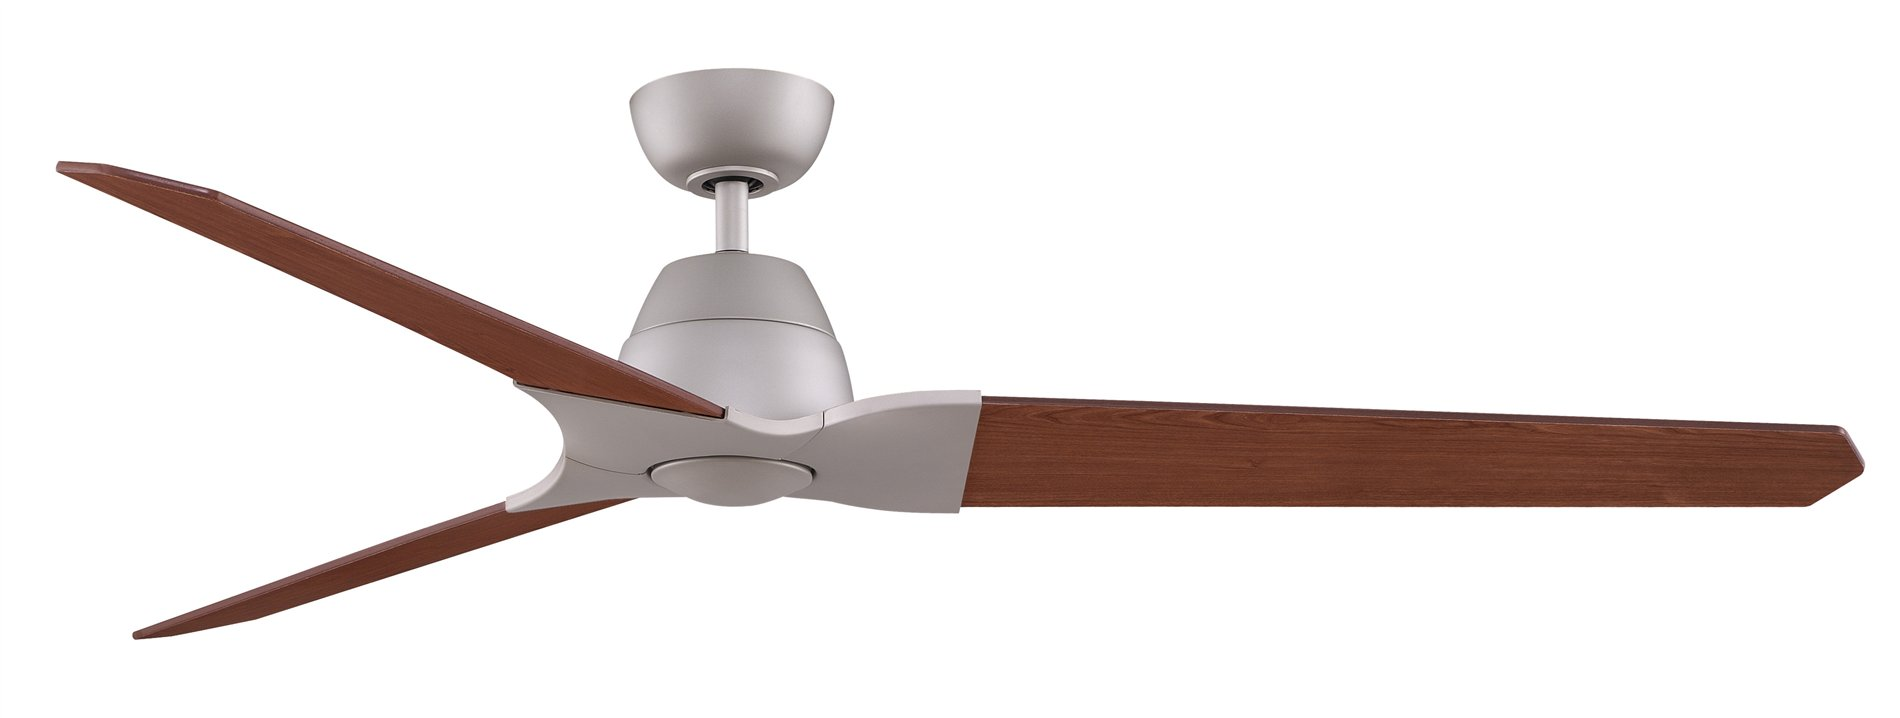 10 Tips on how to choose Contemporary modern ceiling fans